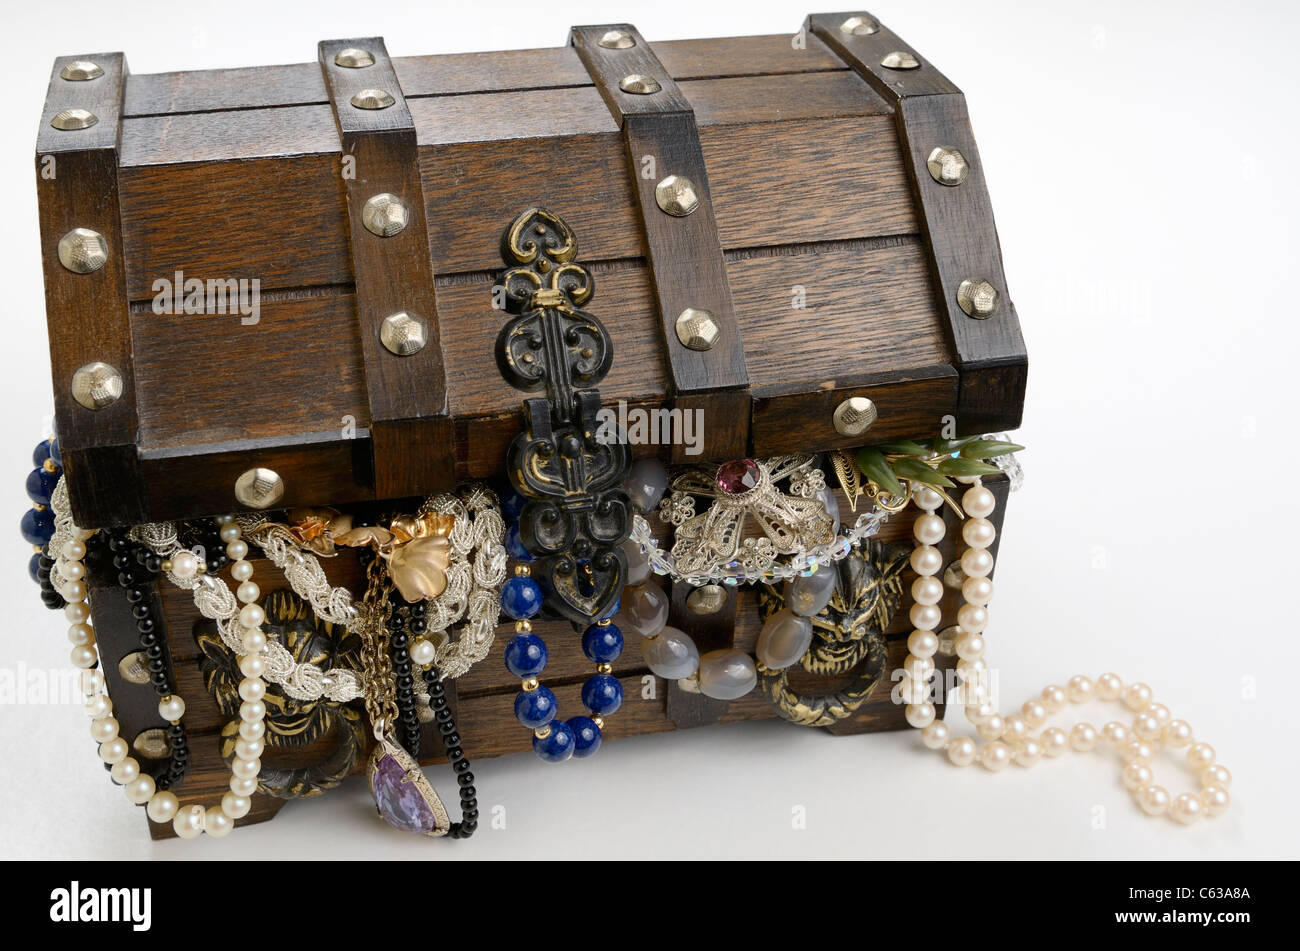 Treasure chest overflowing with riches of pearls and jewels on white background - Stock Image